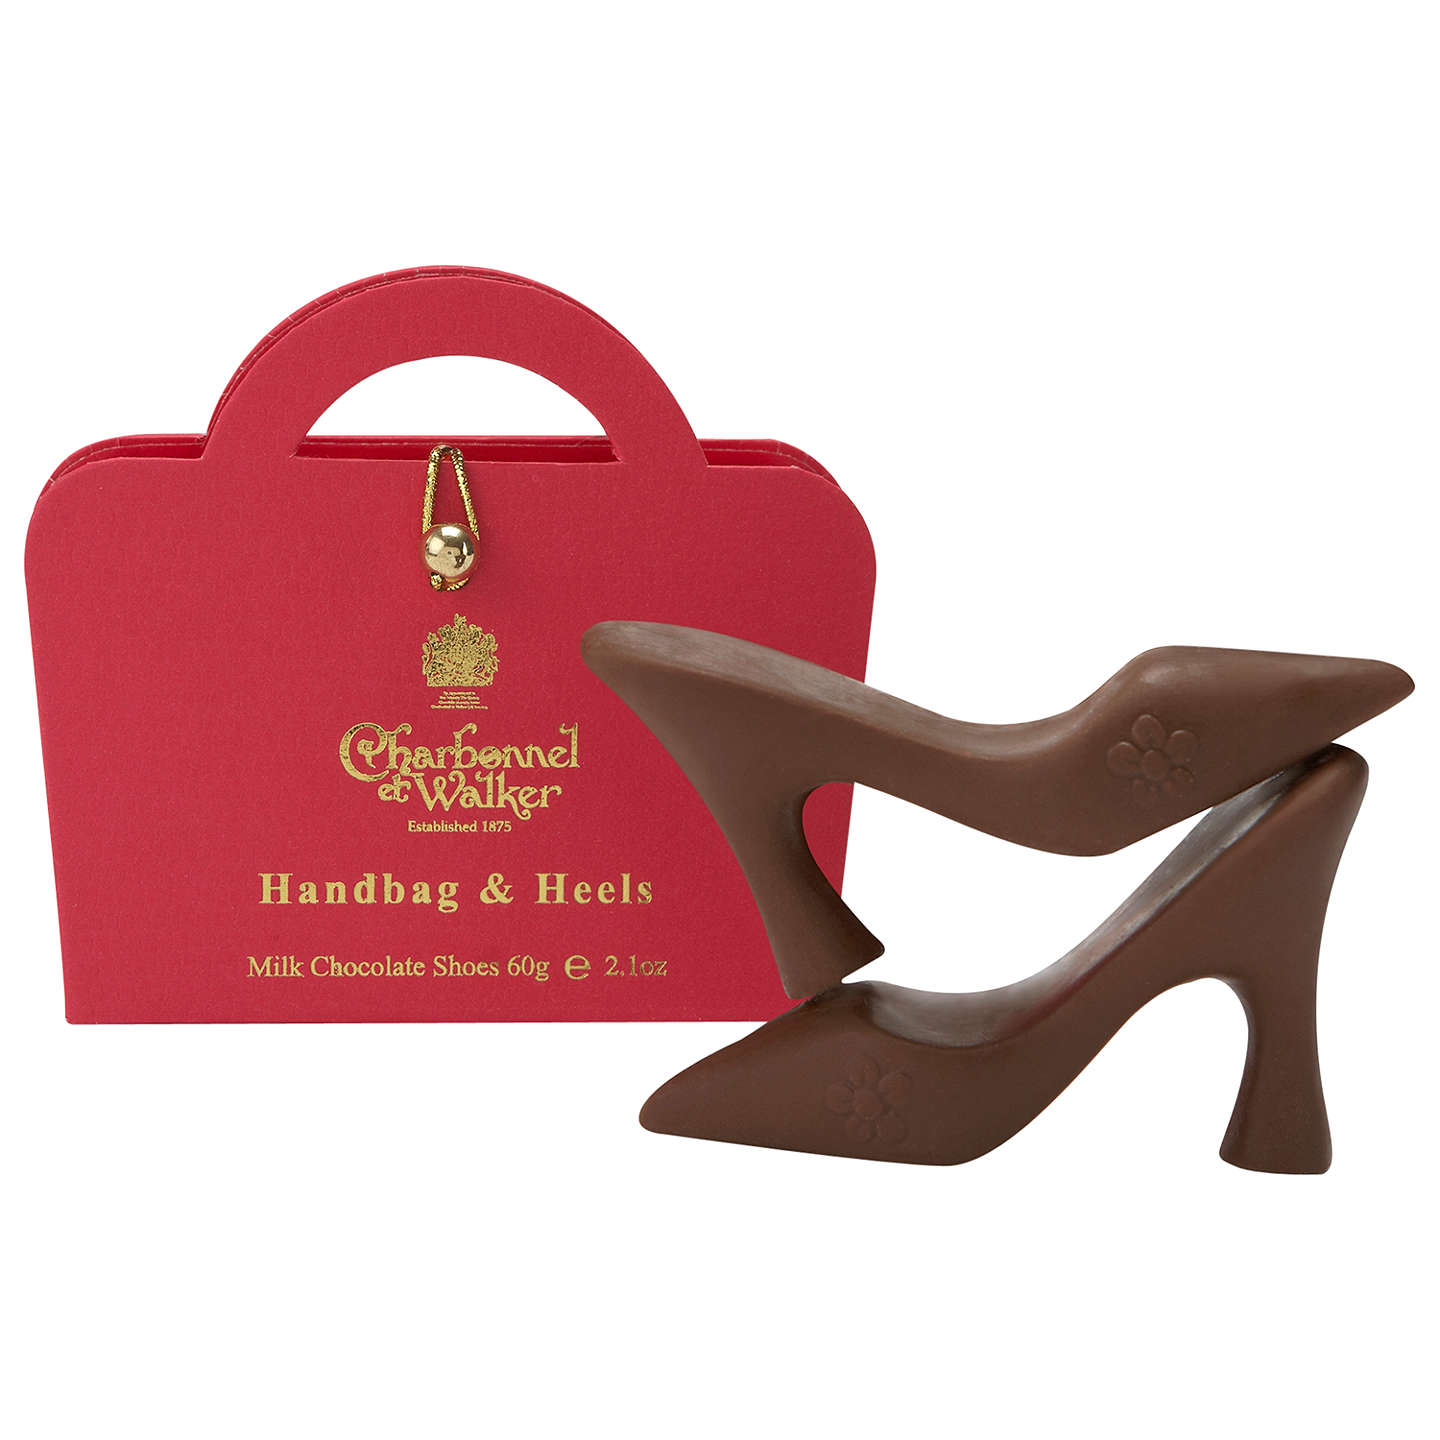 BuyCharbonnel et Walker Milk Chocolate Handbag & Heels Set, 60g, Pink Online at johnlewis.com